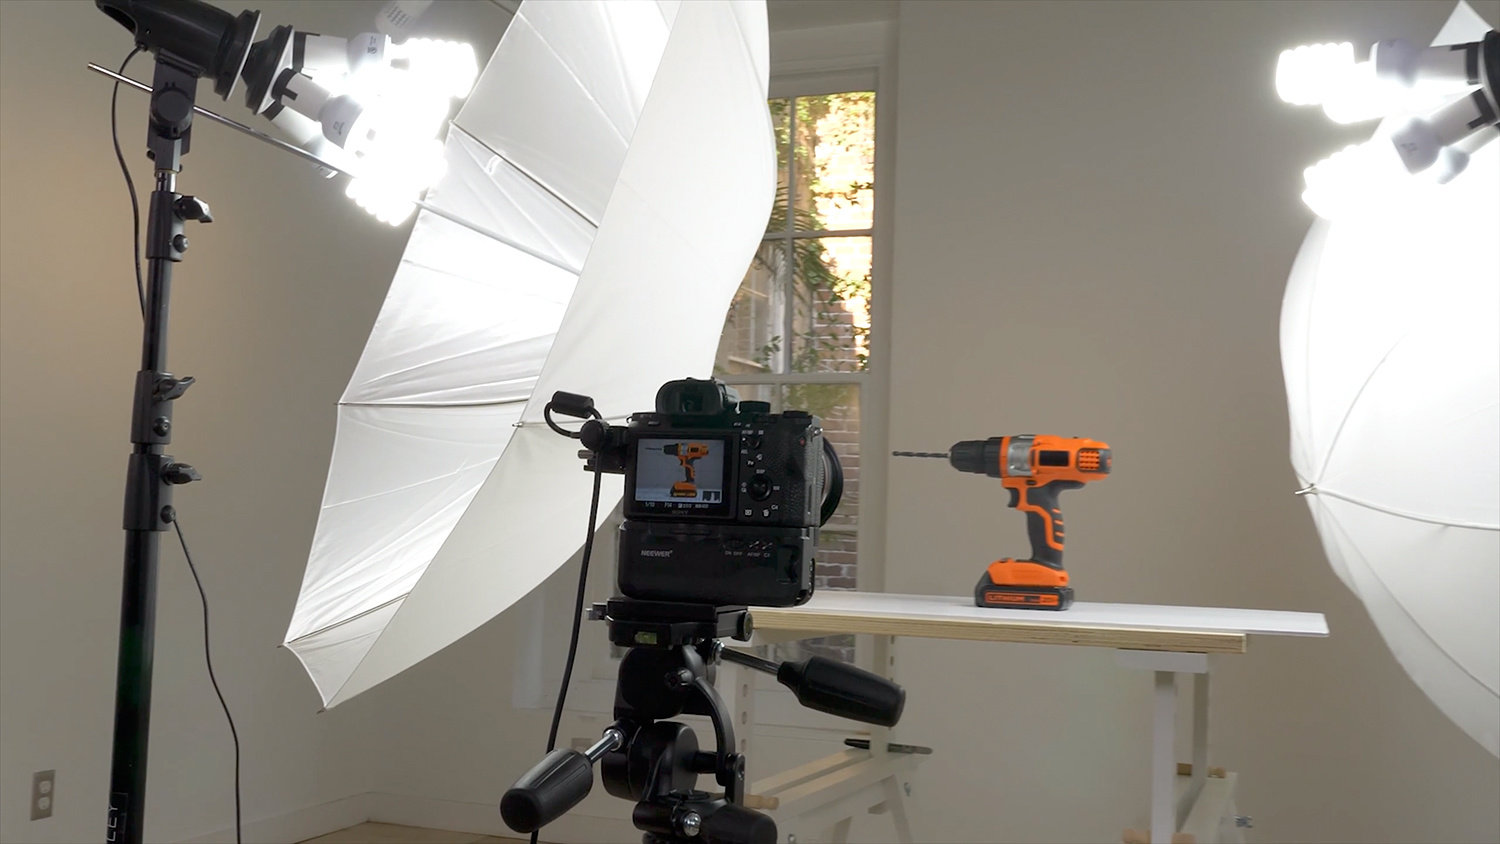 Brian Rodgers Jr., commercial product photographer, product photography, cordless drill, behind the scenes, continuous lighting